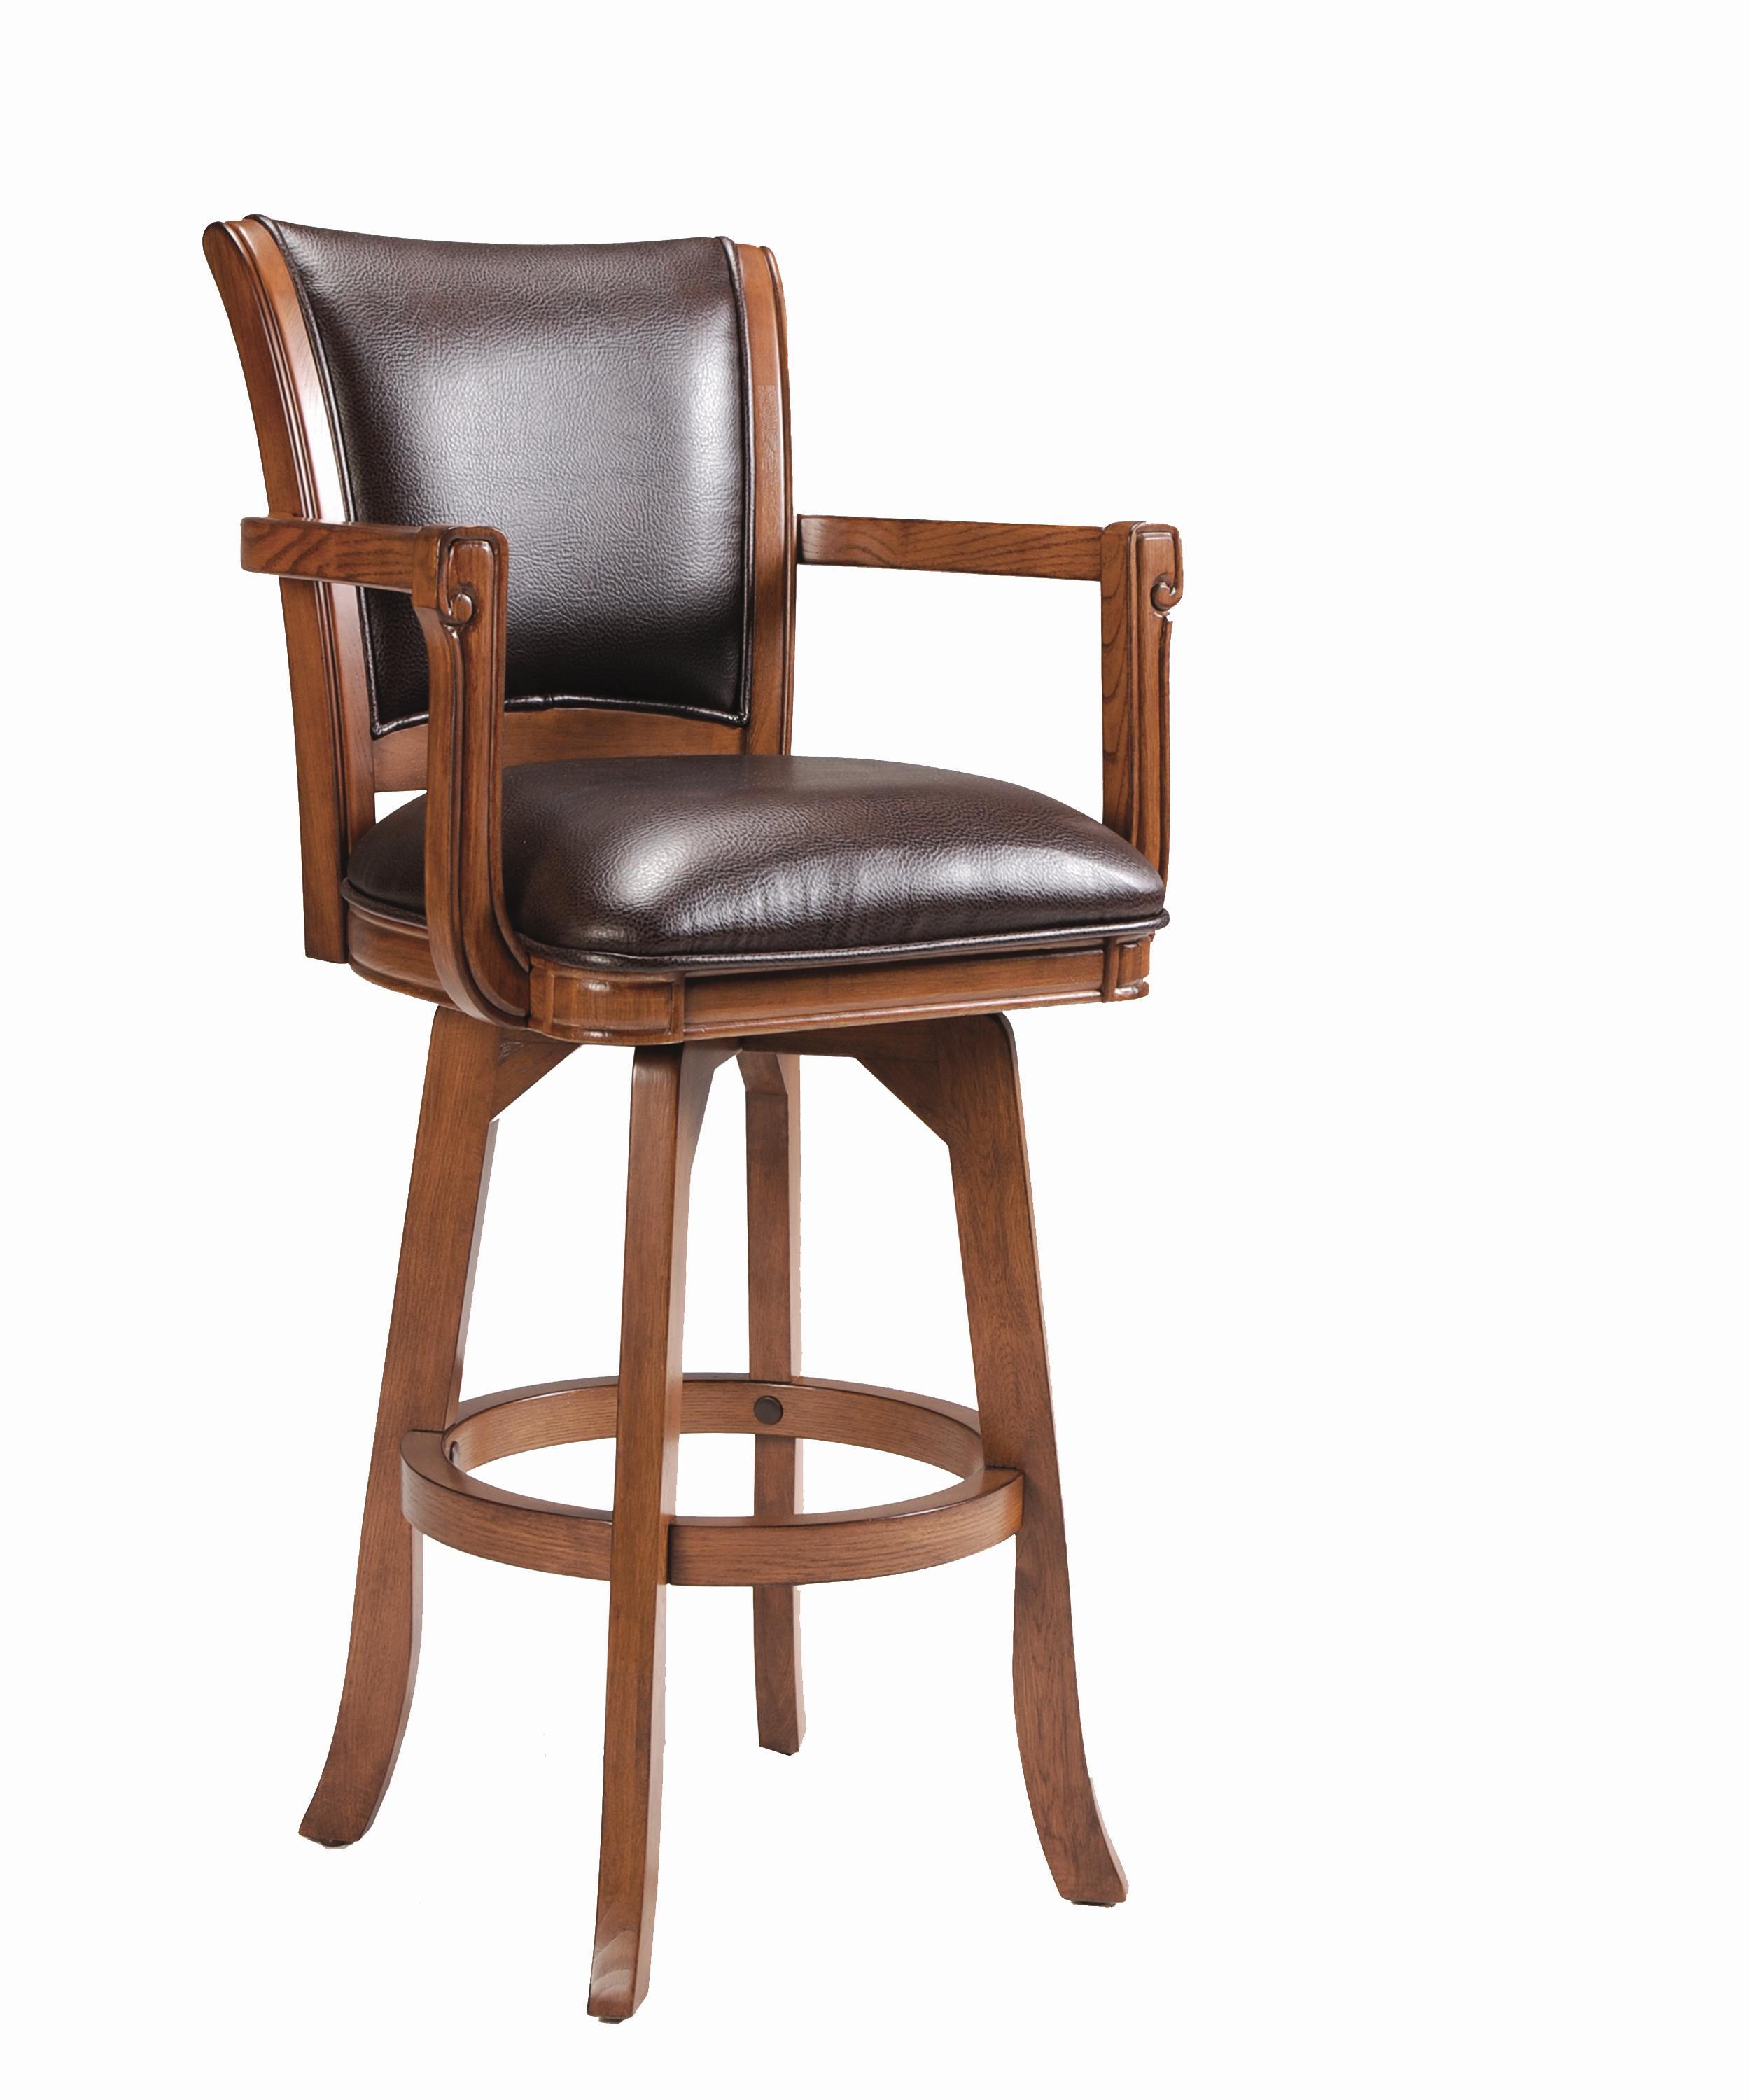 Hillsdale Game Stools & Chairs Park View Swivel Bar Stool - Item Number: 4186-830